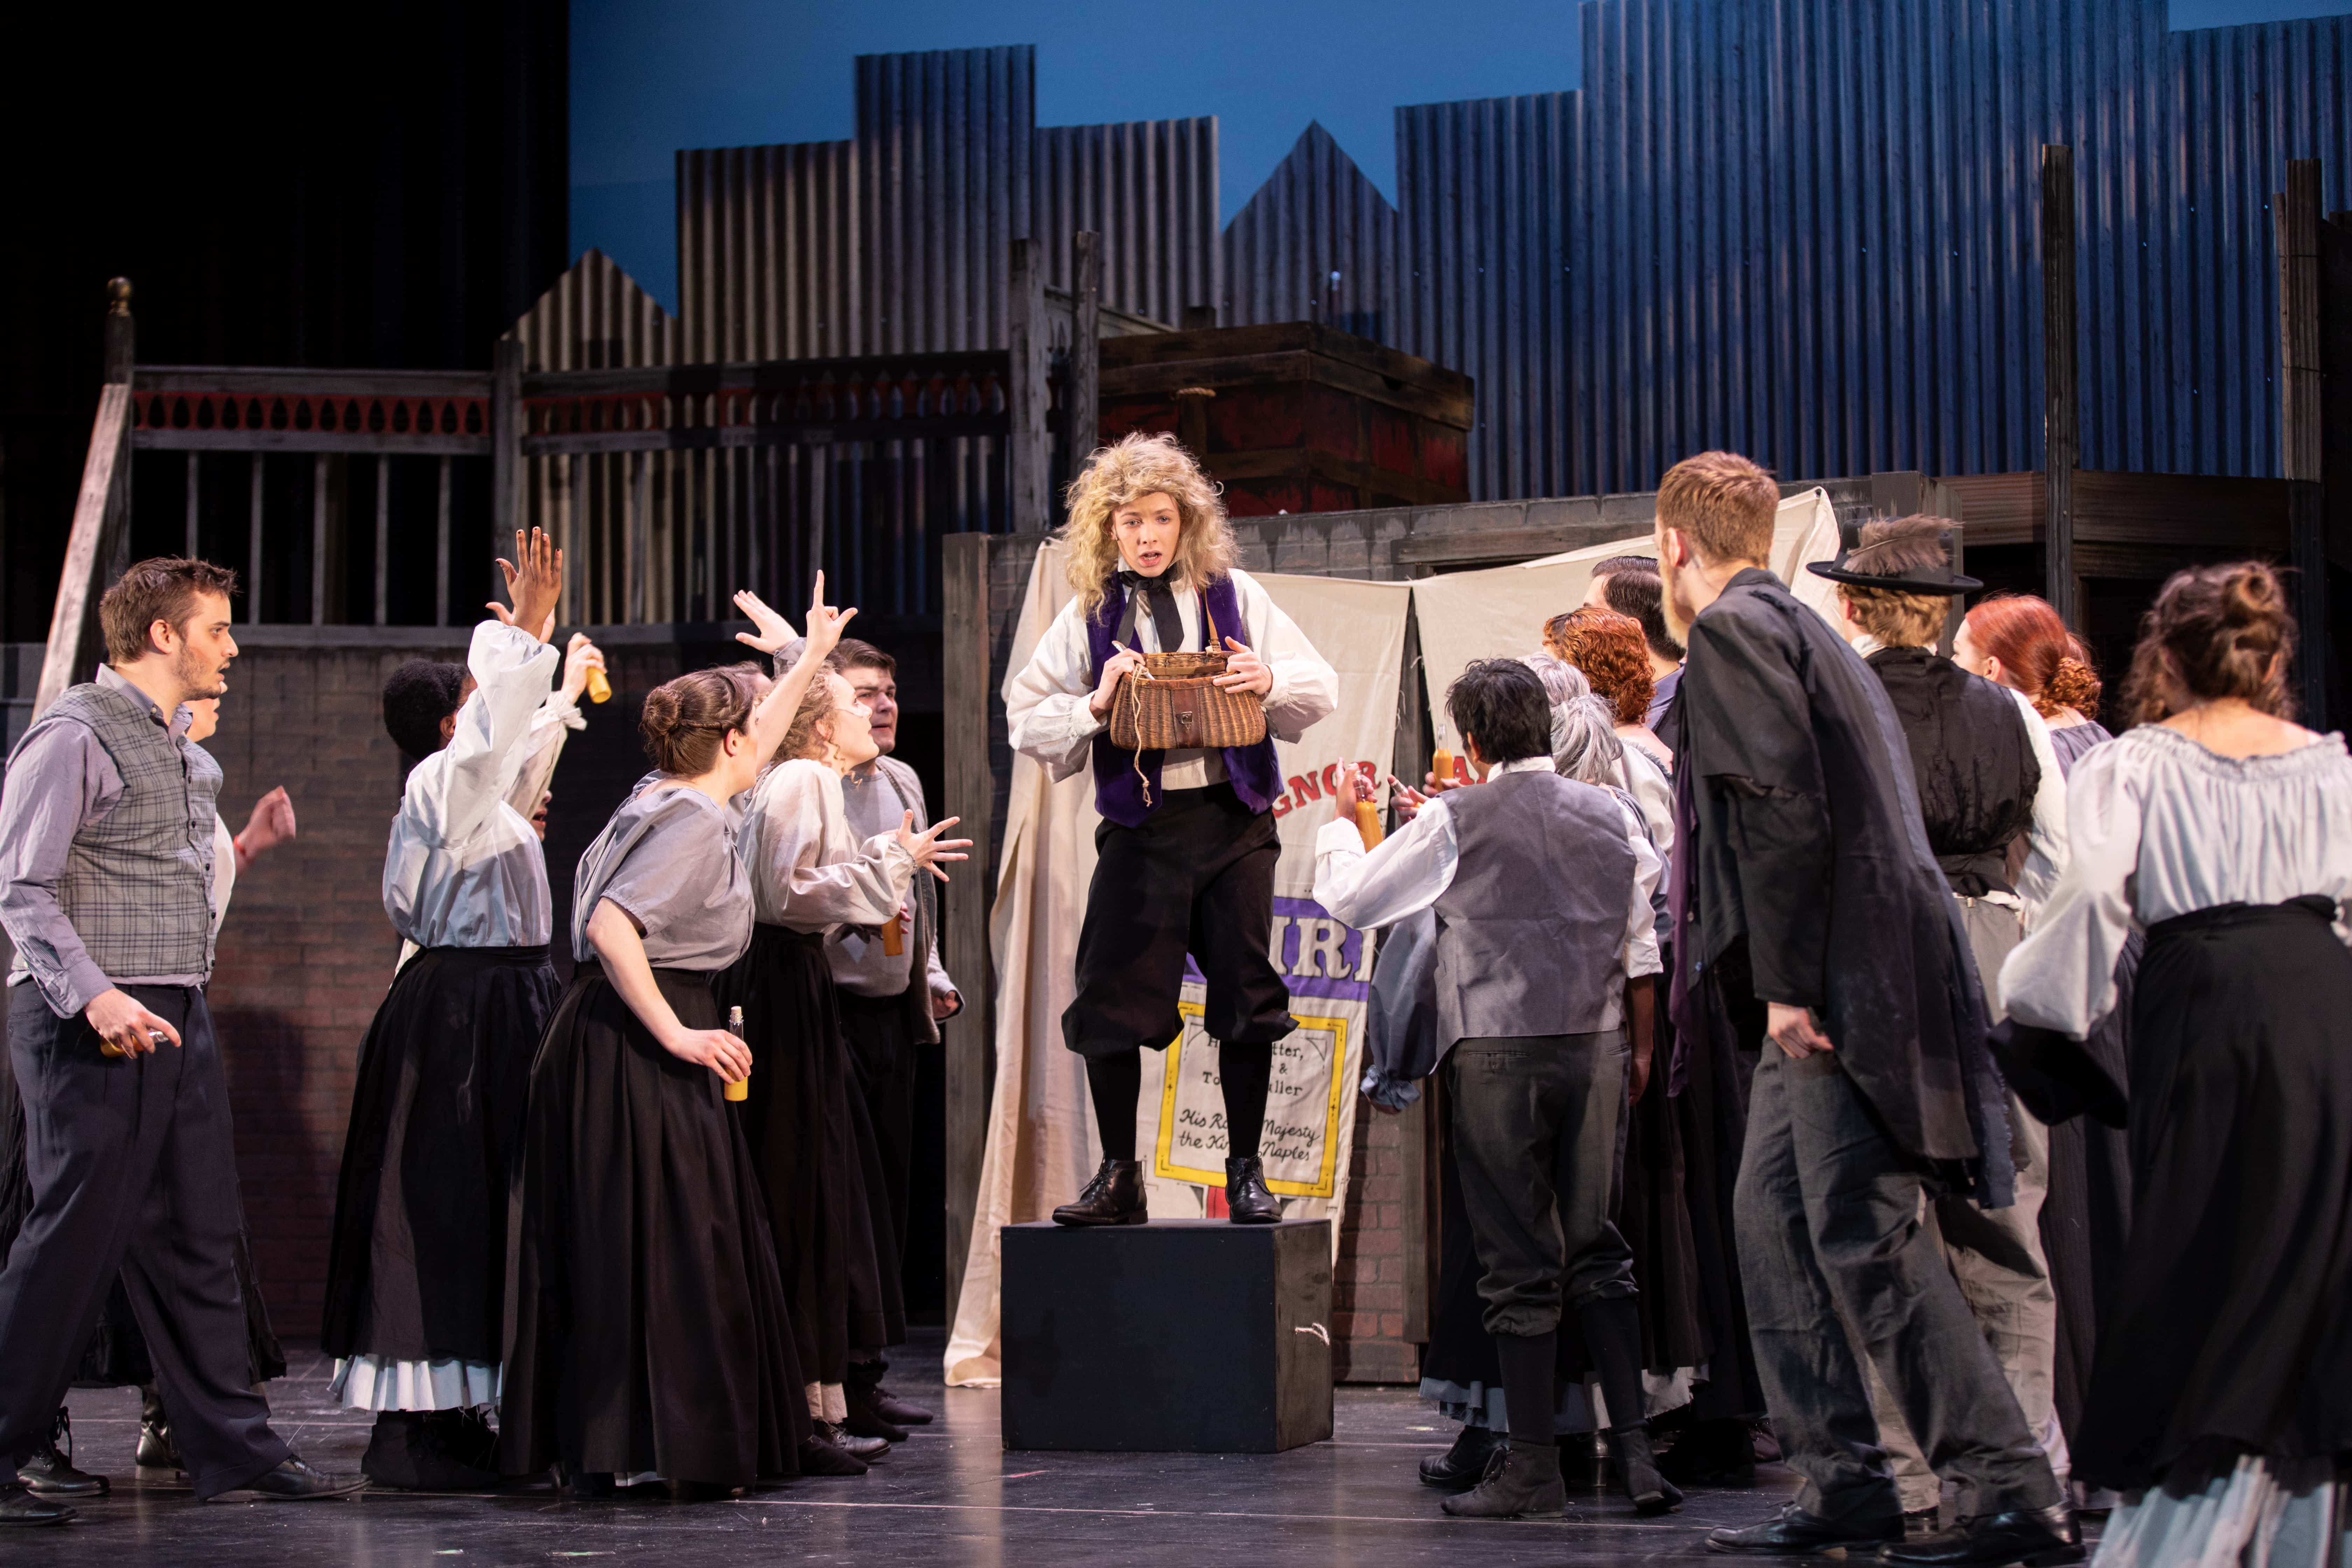 The Arlington Players' Sweeney Todd runs through April 28 at Thomas Jefferson Theatre. Photo by Peter Hill.